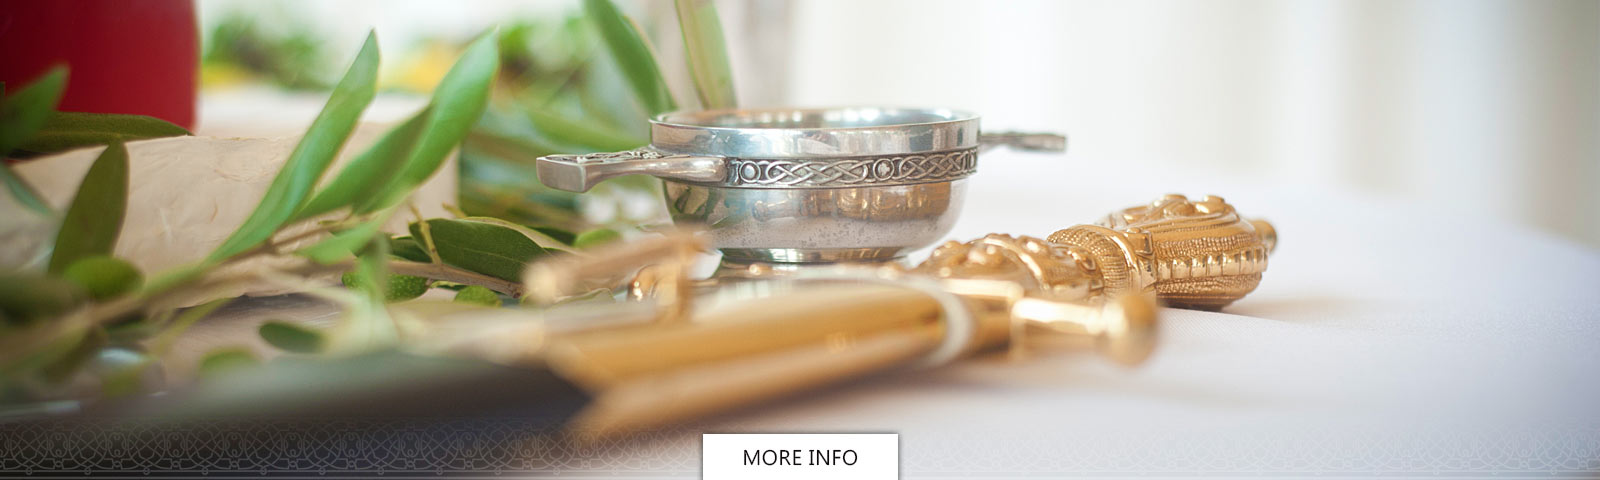 Celtic silver napkin ring and gold sword on a table